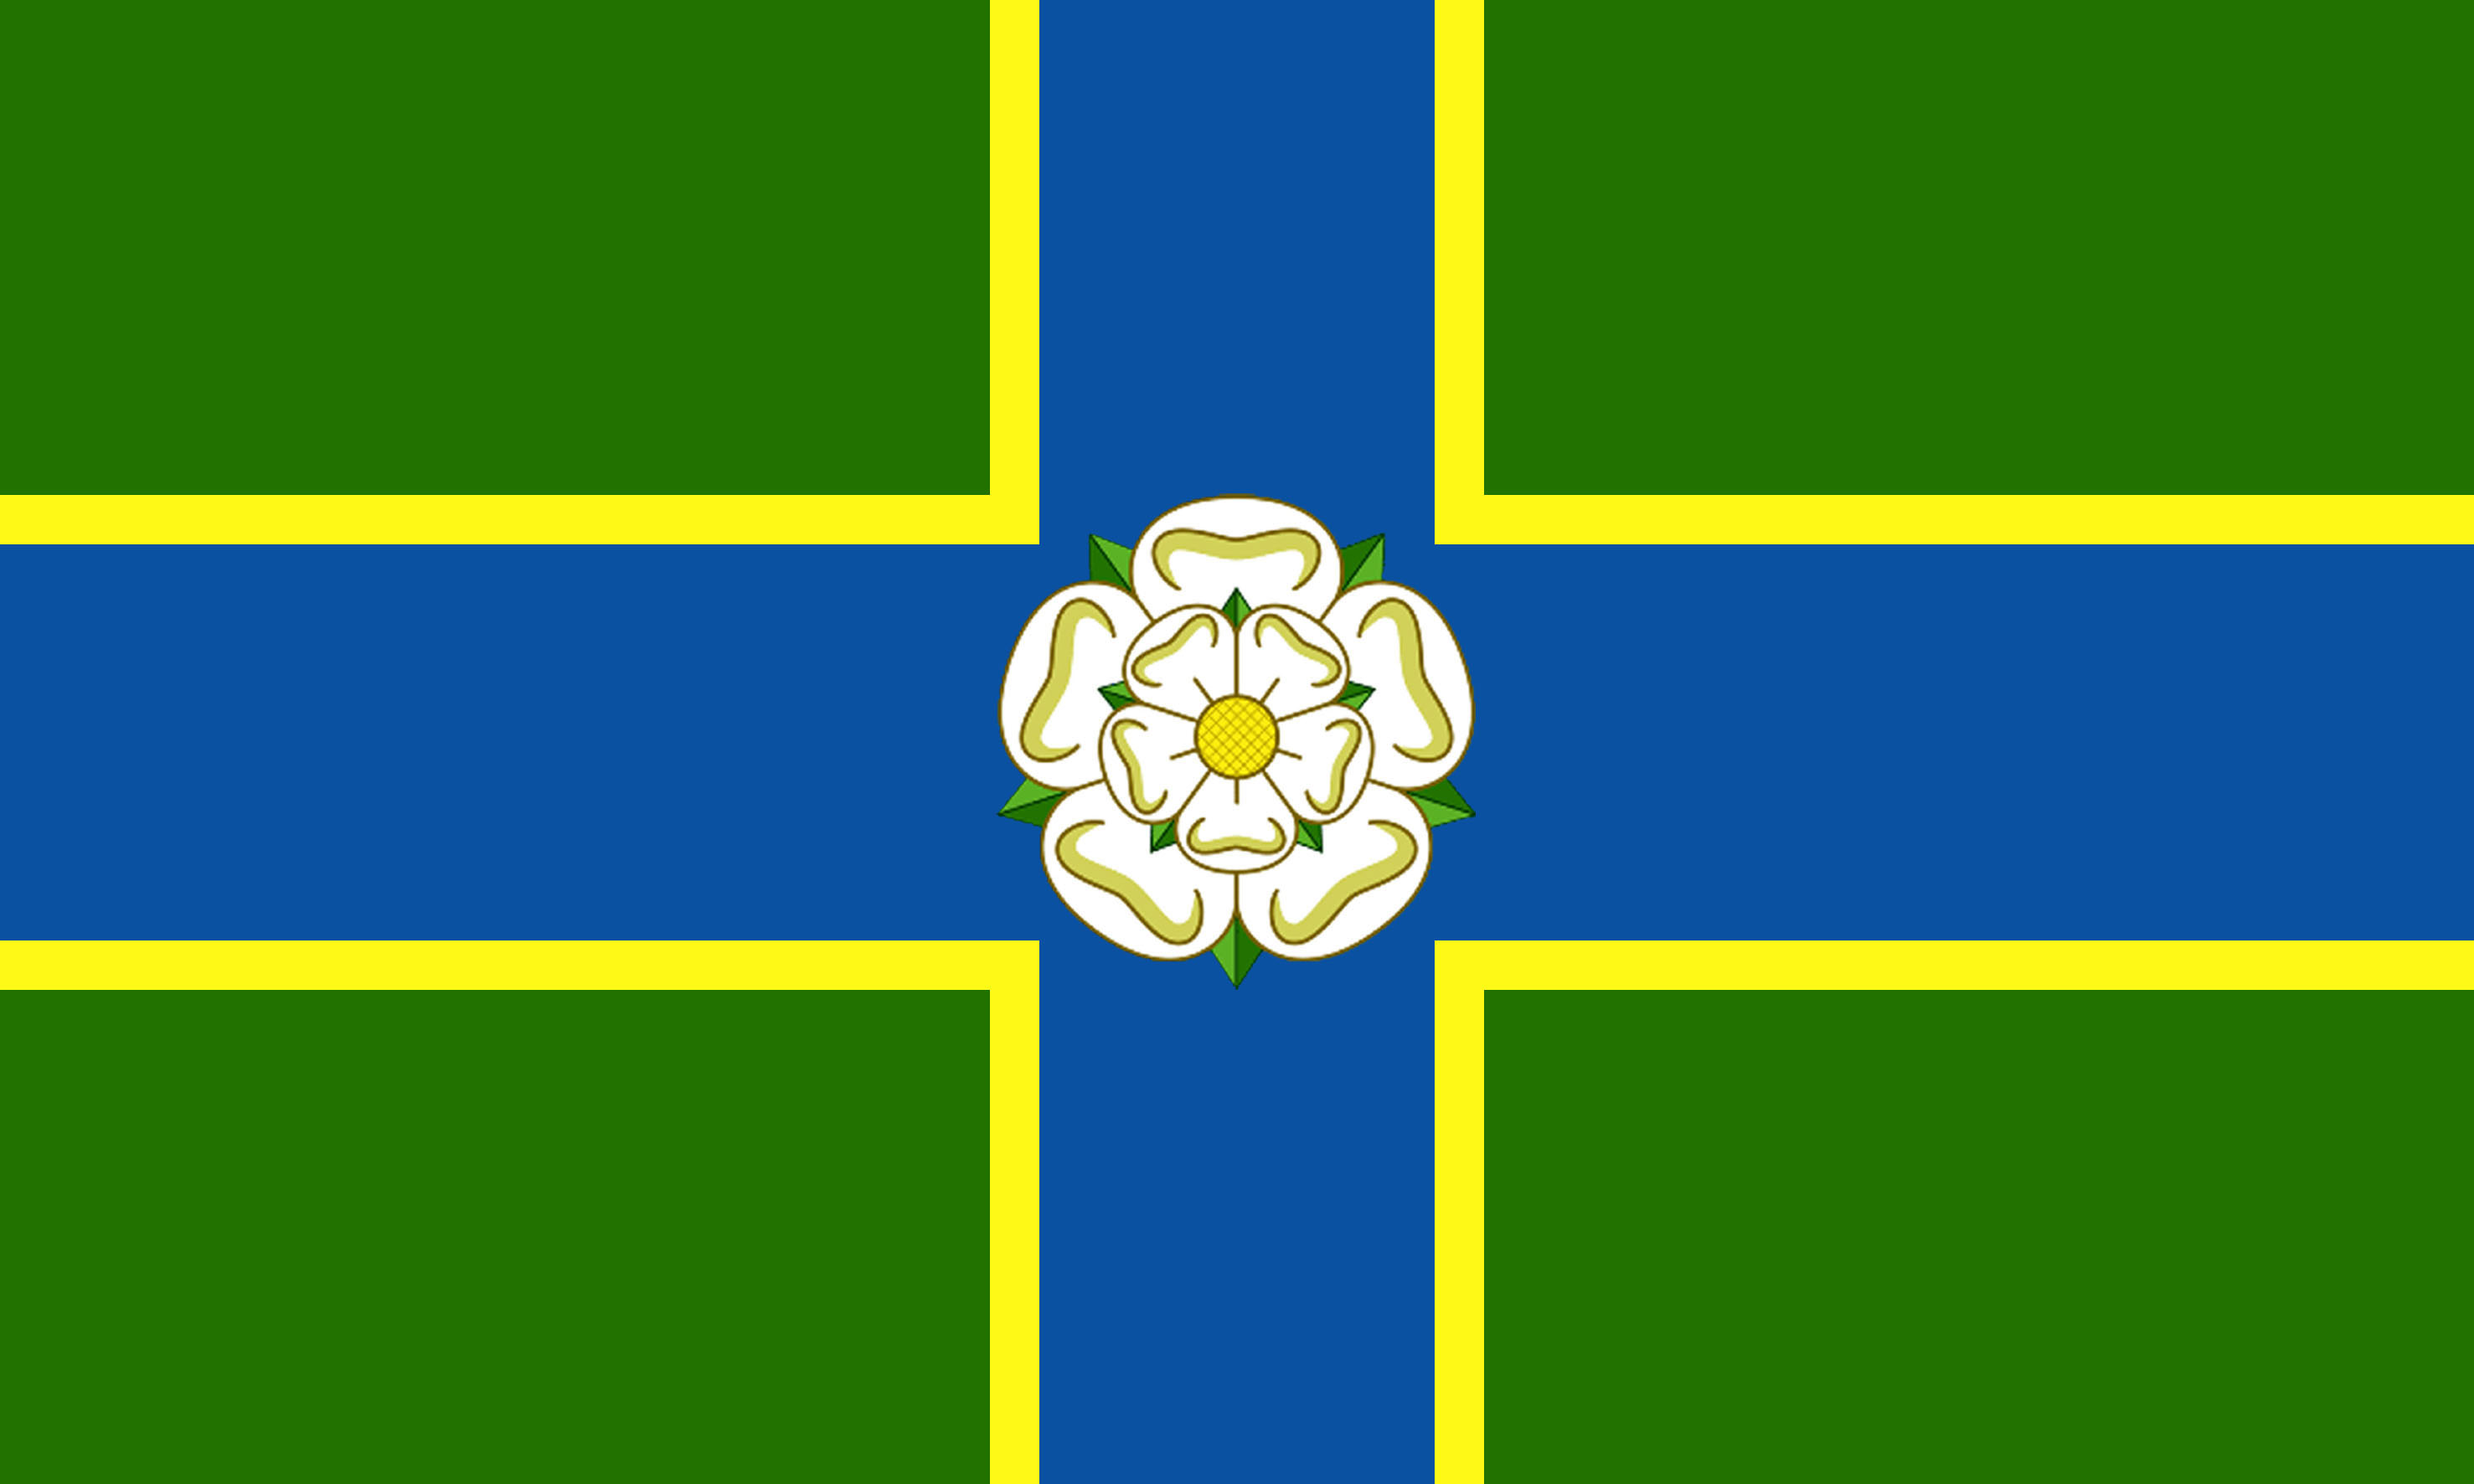 Flag gallery british county flags - North Riding Flag